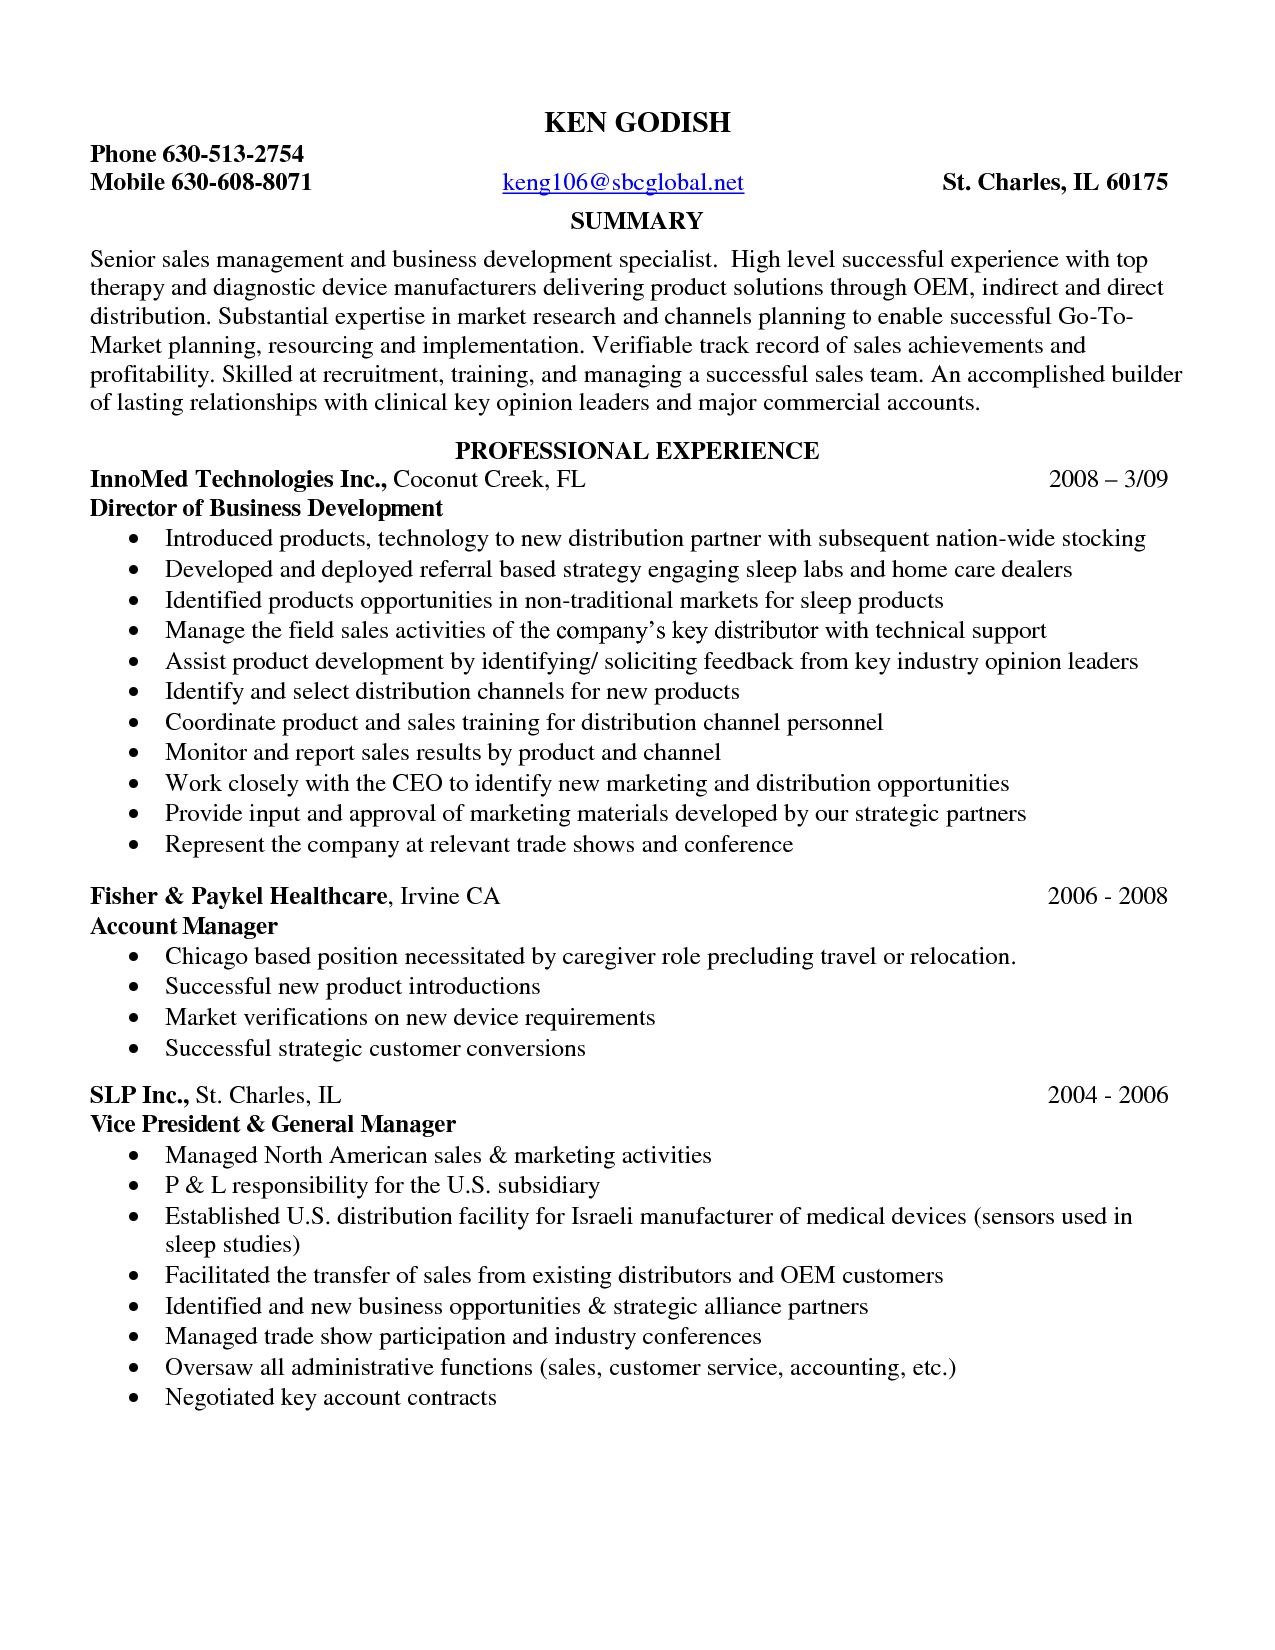 Sample Resume Entry Level Pharmaceutical Sales Sample Resume Entry – Sample Resume for Sales Job